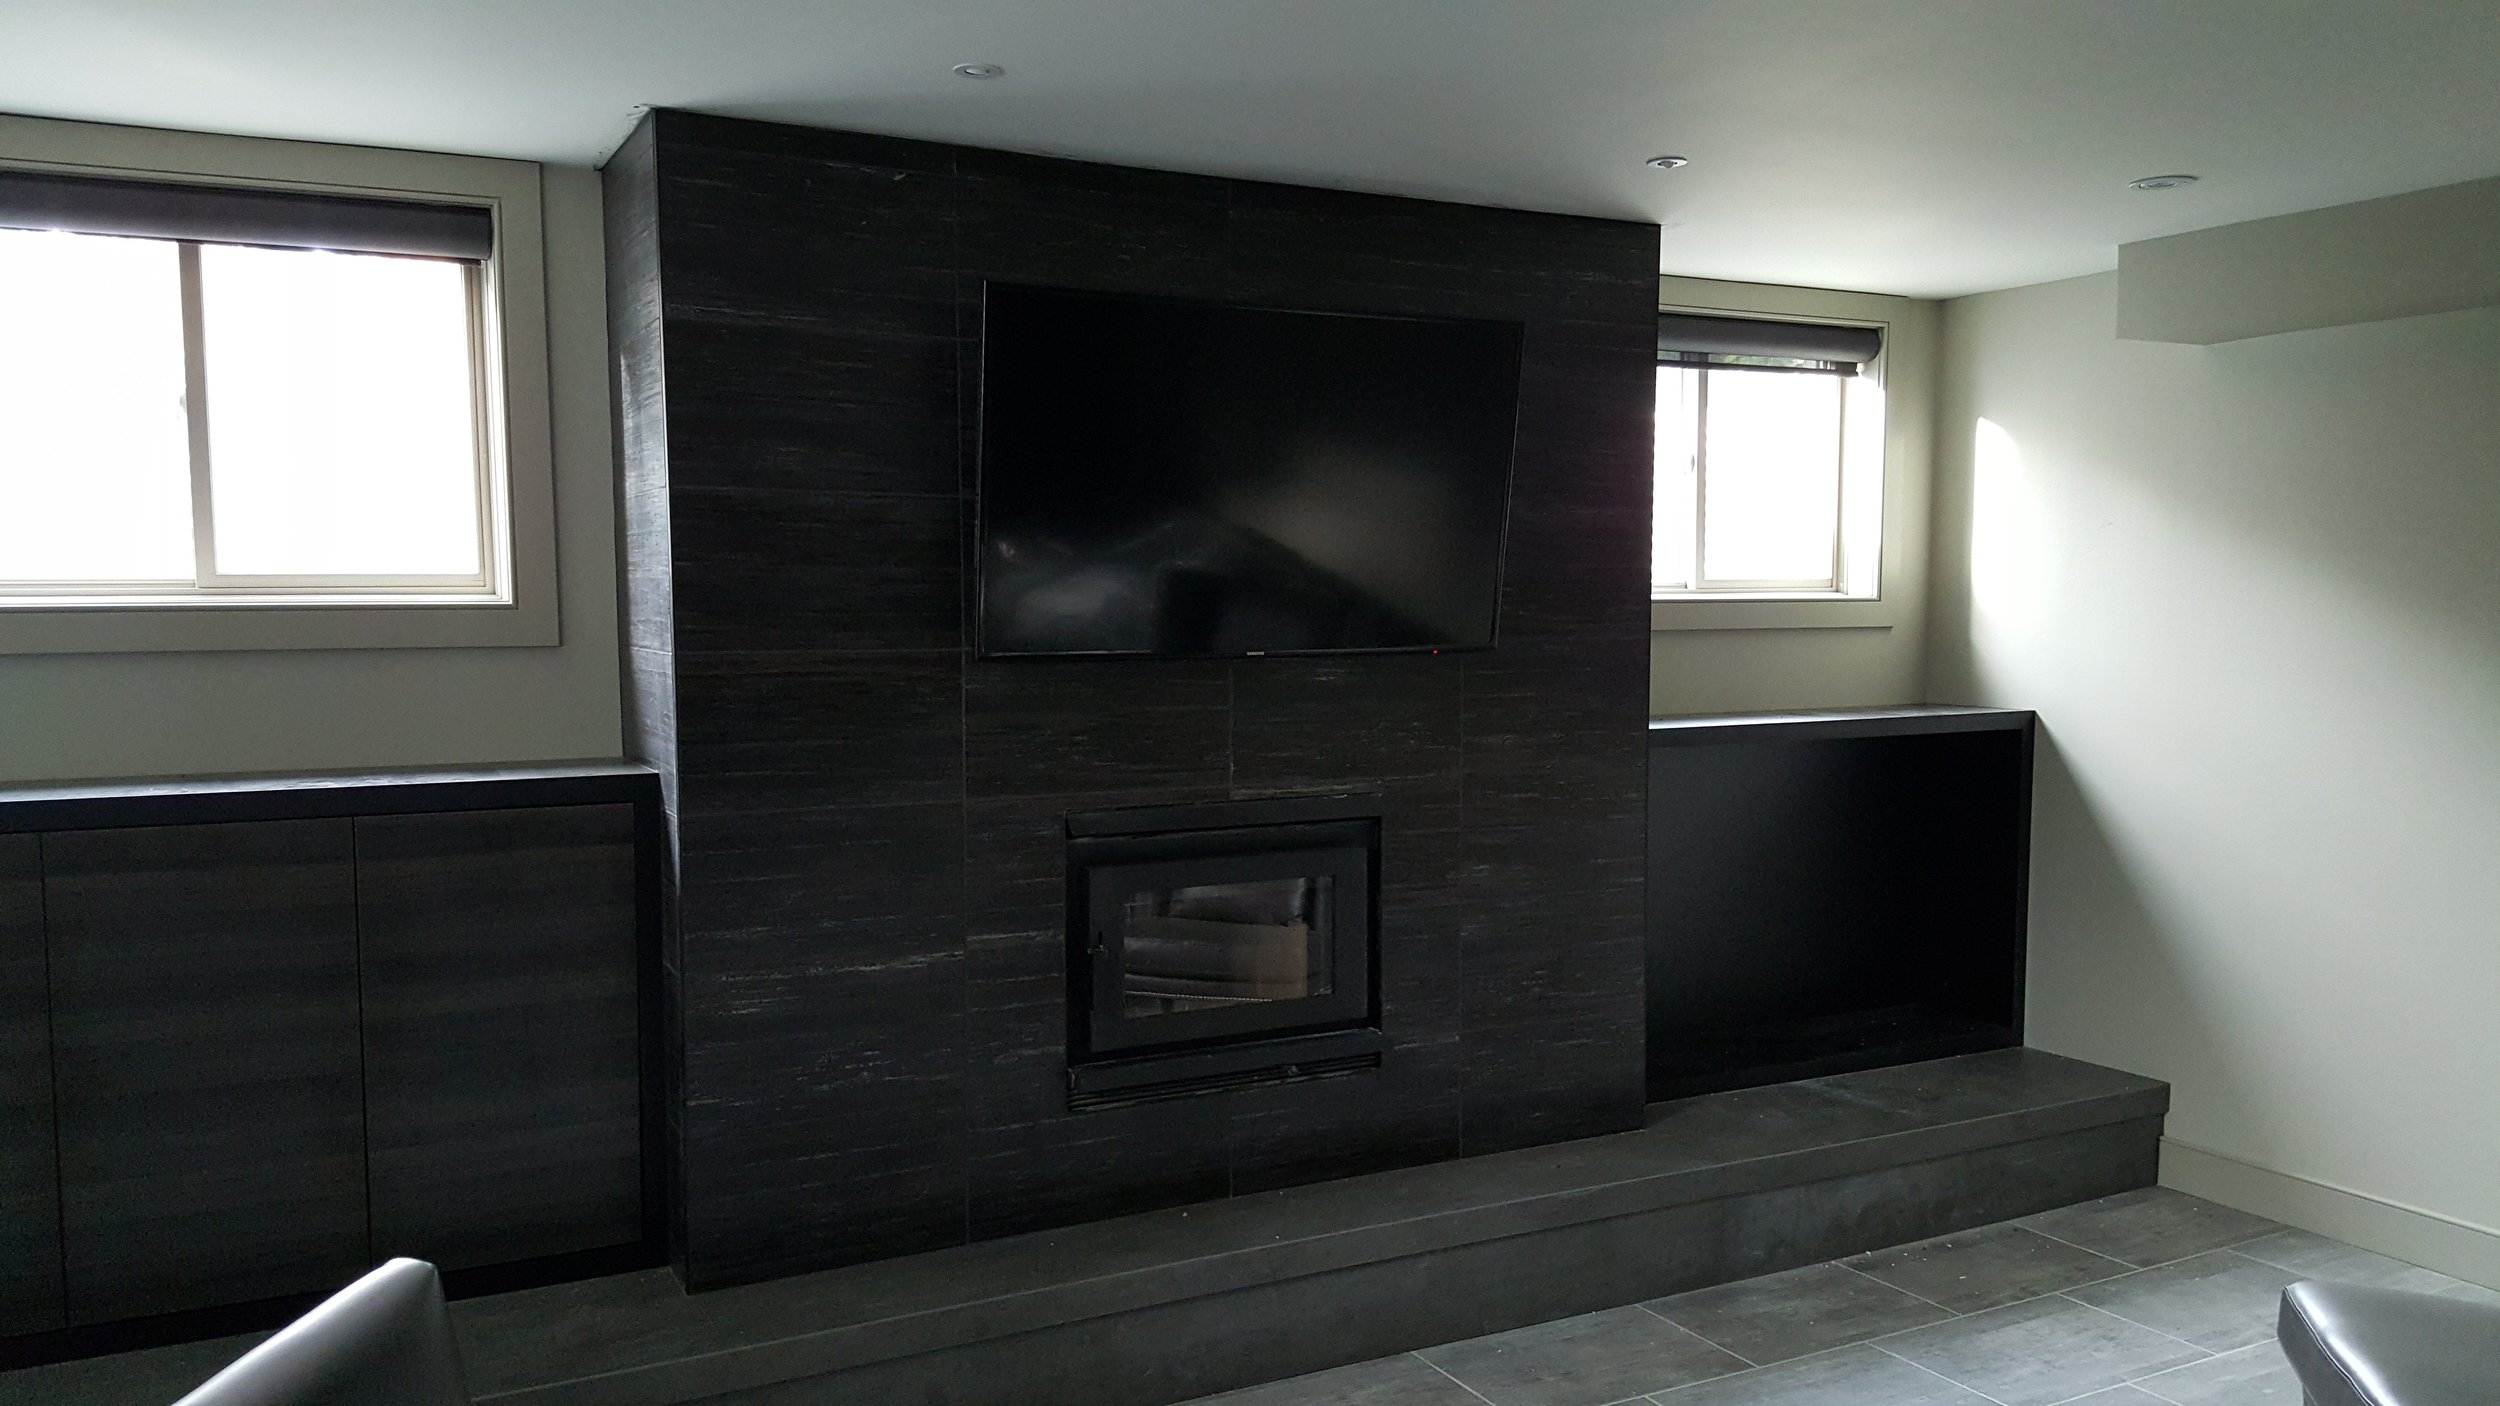 large format tile on this basement fireplace looks awesome.